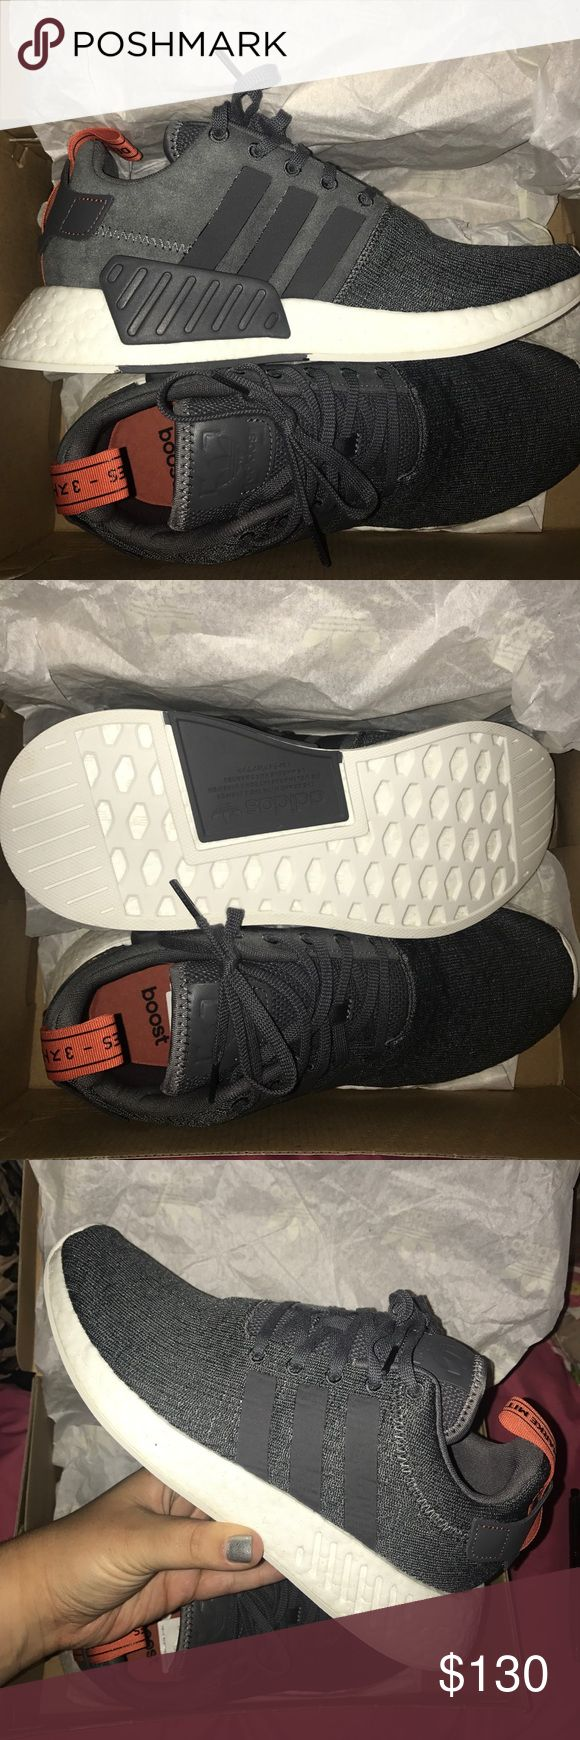 NMD R2 grey & burnt orange adidas Adidas Boost shoes are infamous for being the most comfy, like, ever. It's like walking on clouds, or marshmallows, or clouds made of marshmallows. They have a generous width & come in a cool color for fall 😎 Jump on it! adidas Shoes Athletic Shoes